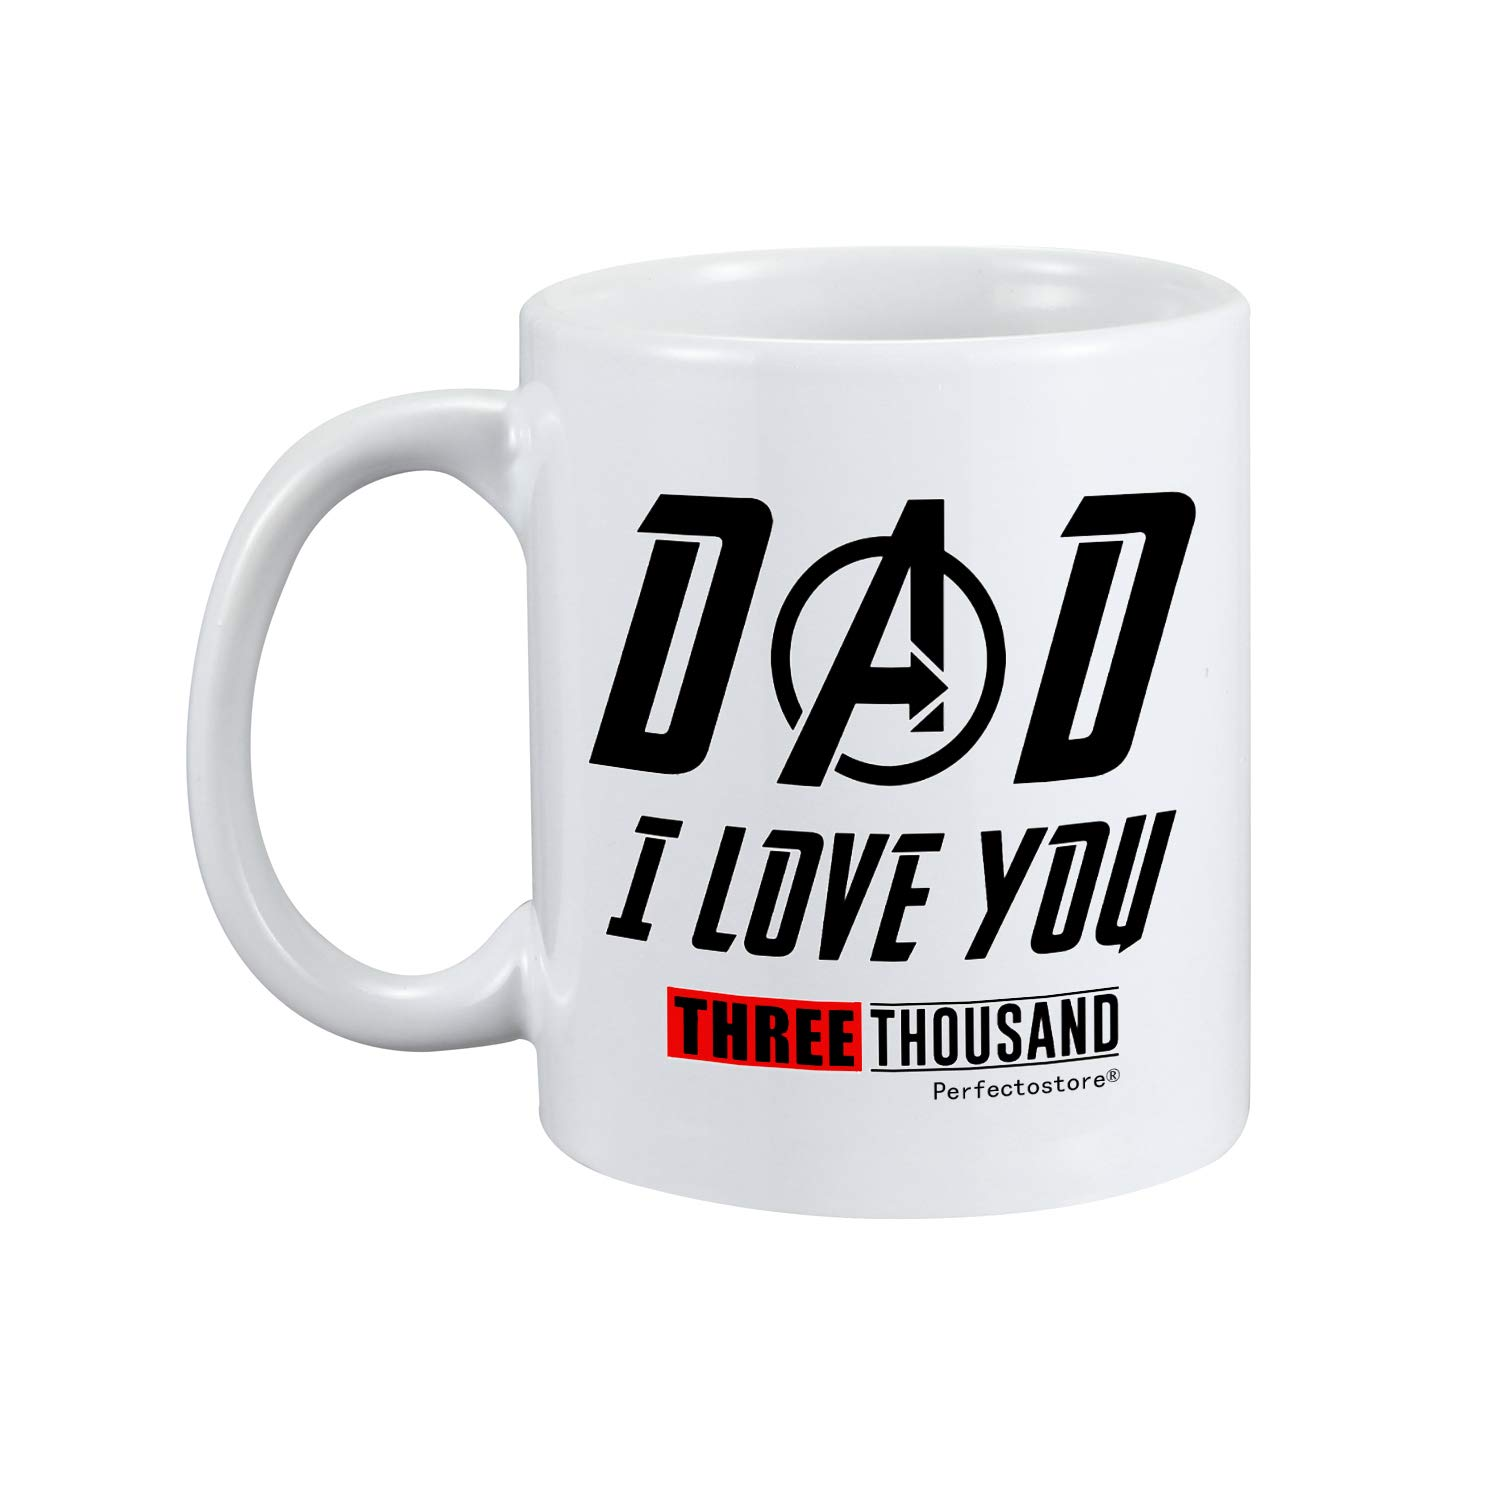 PerfectoStore I Love You 3000 Dad Gifts from Daughter If Had Differen't Dad I'd Kick Him in Face Dad Gifts from Son Funny Dad Gift Coffee Mug Tea Cup White by PerfectoStore (Image #2)